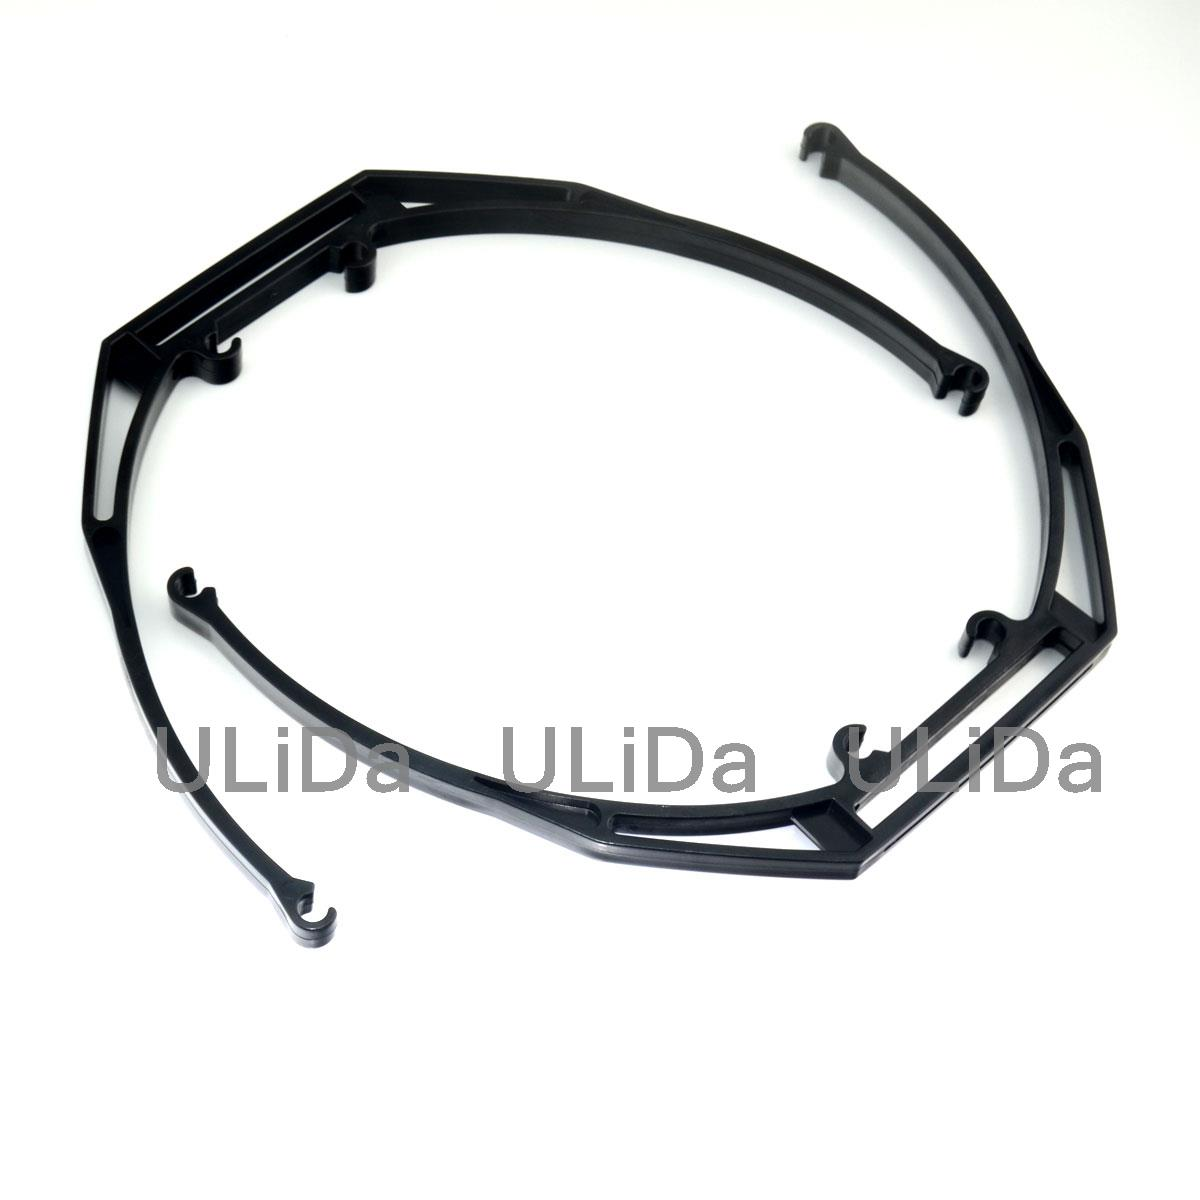 Multirotor Landing Gear Skid Parts f/ RC F450 F550 Quadcopter Gimbal Black 195mm yuneec q500 typhoon quadcopter handheld cgo steadygrip gimbal black